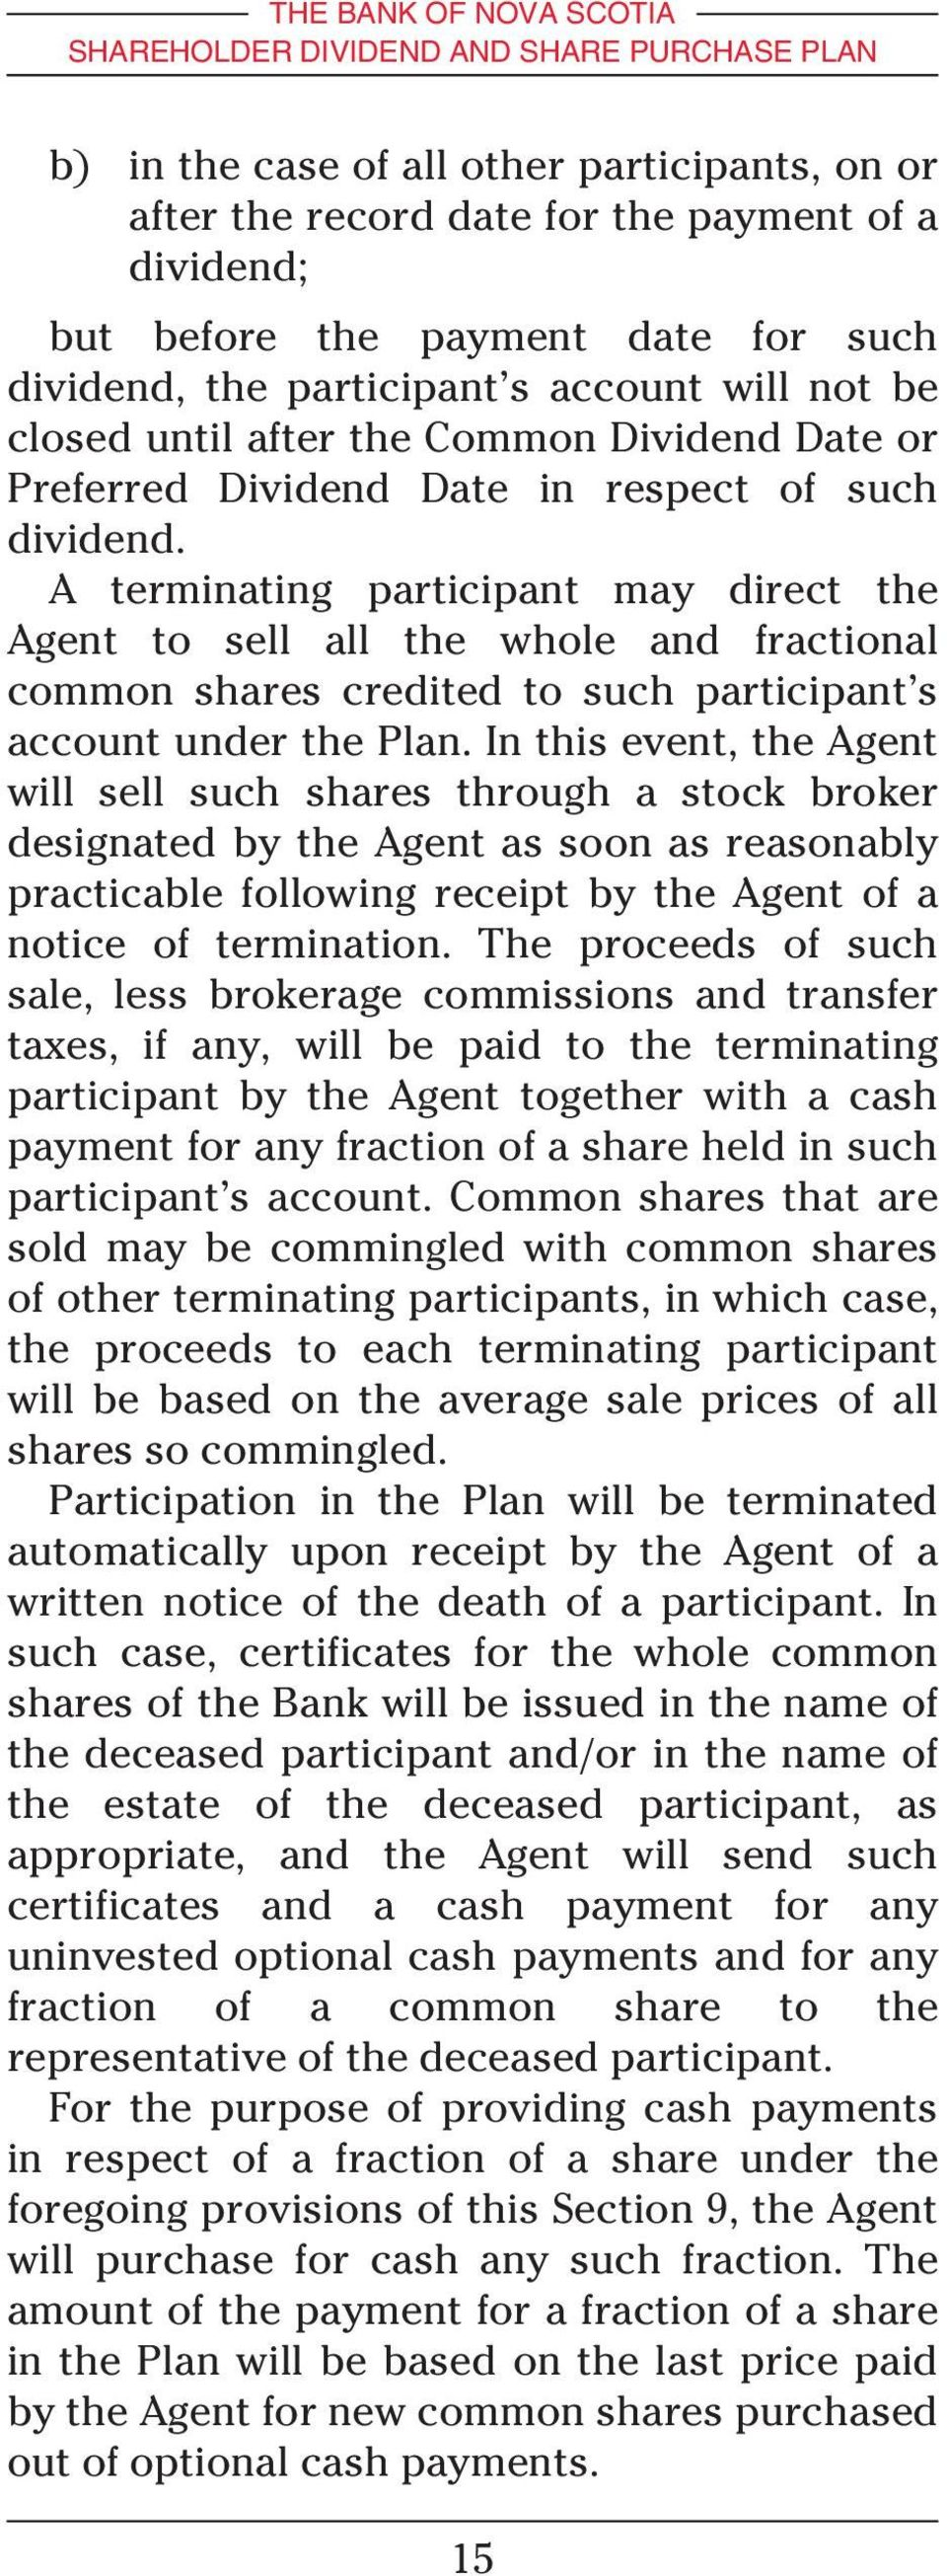 A terminating participant may direct the Agent to sell all the whole and fractional common shares credited to such participant s account under the Plan.